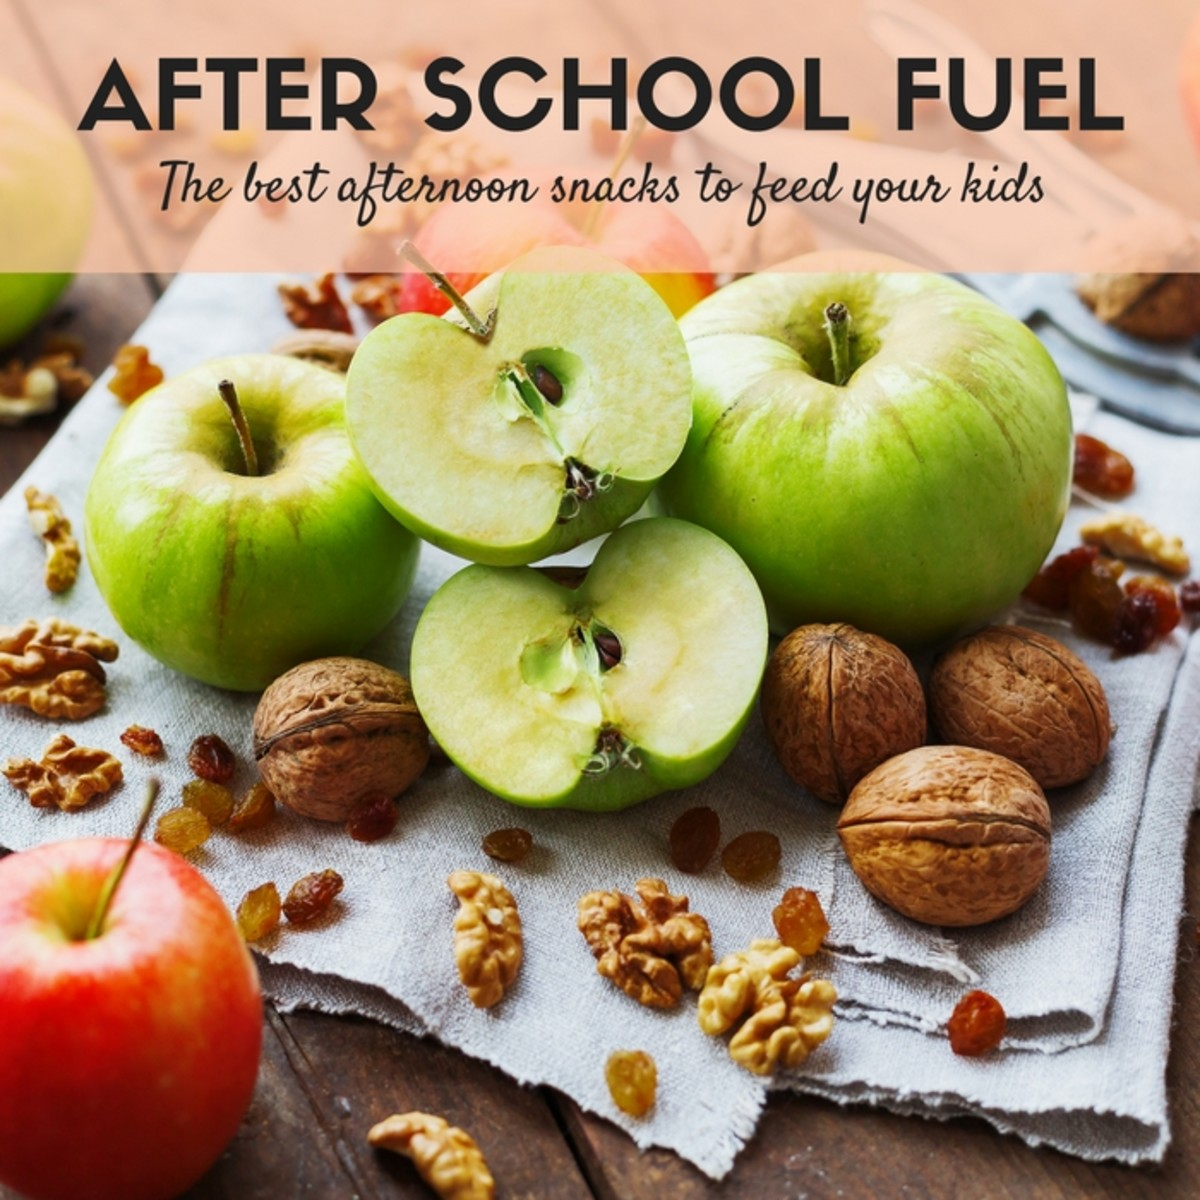 After School Fuel - Best Snacks for Kids